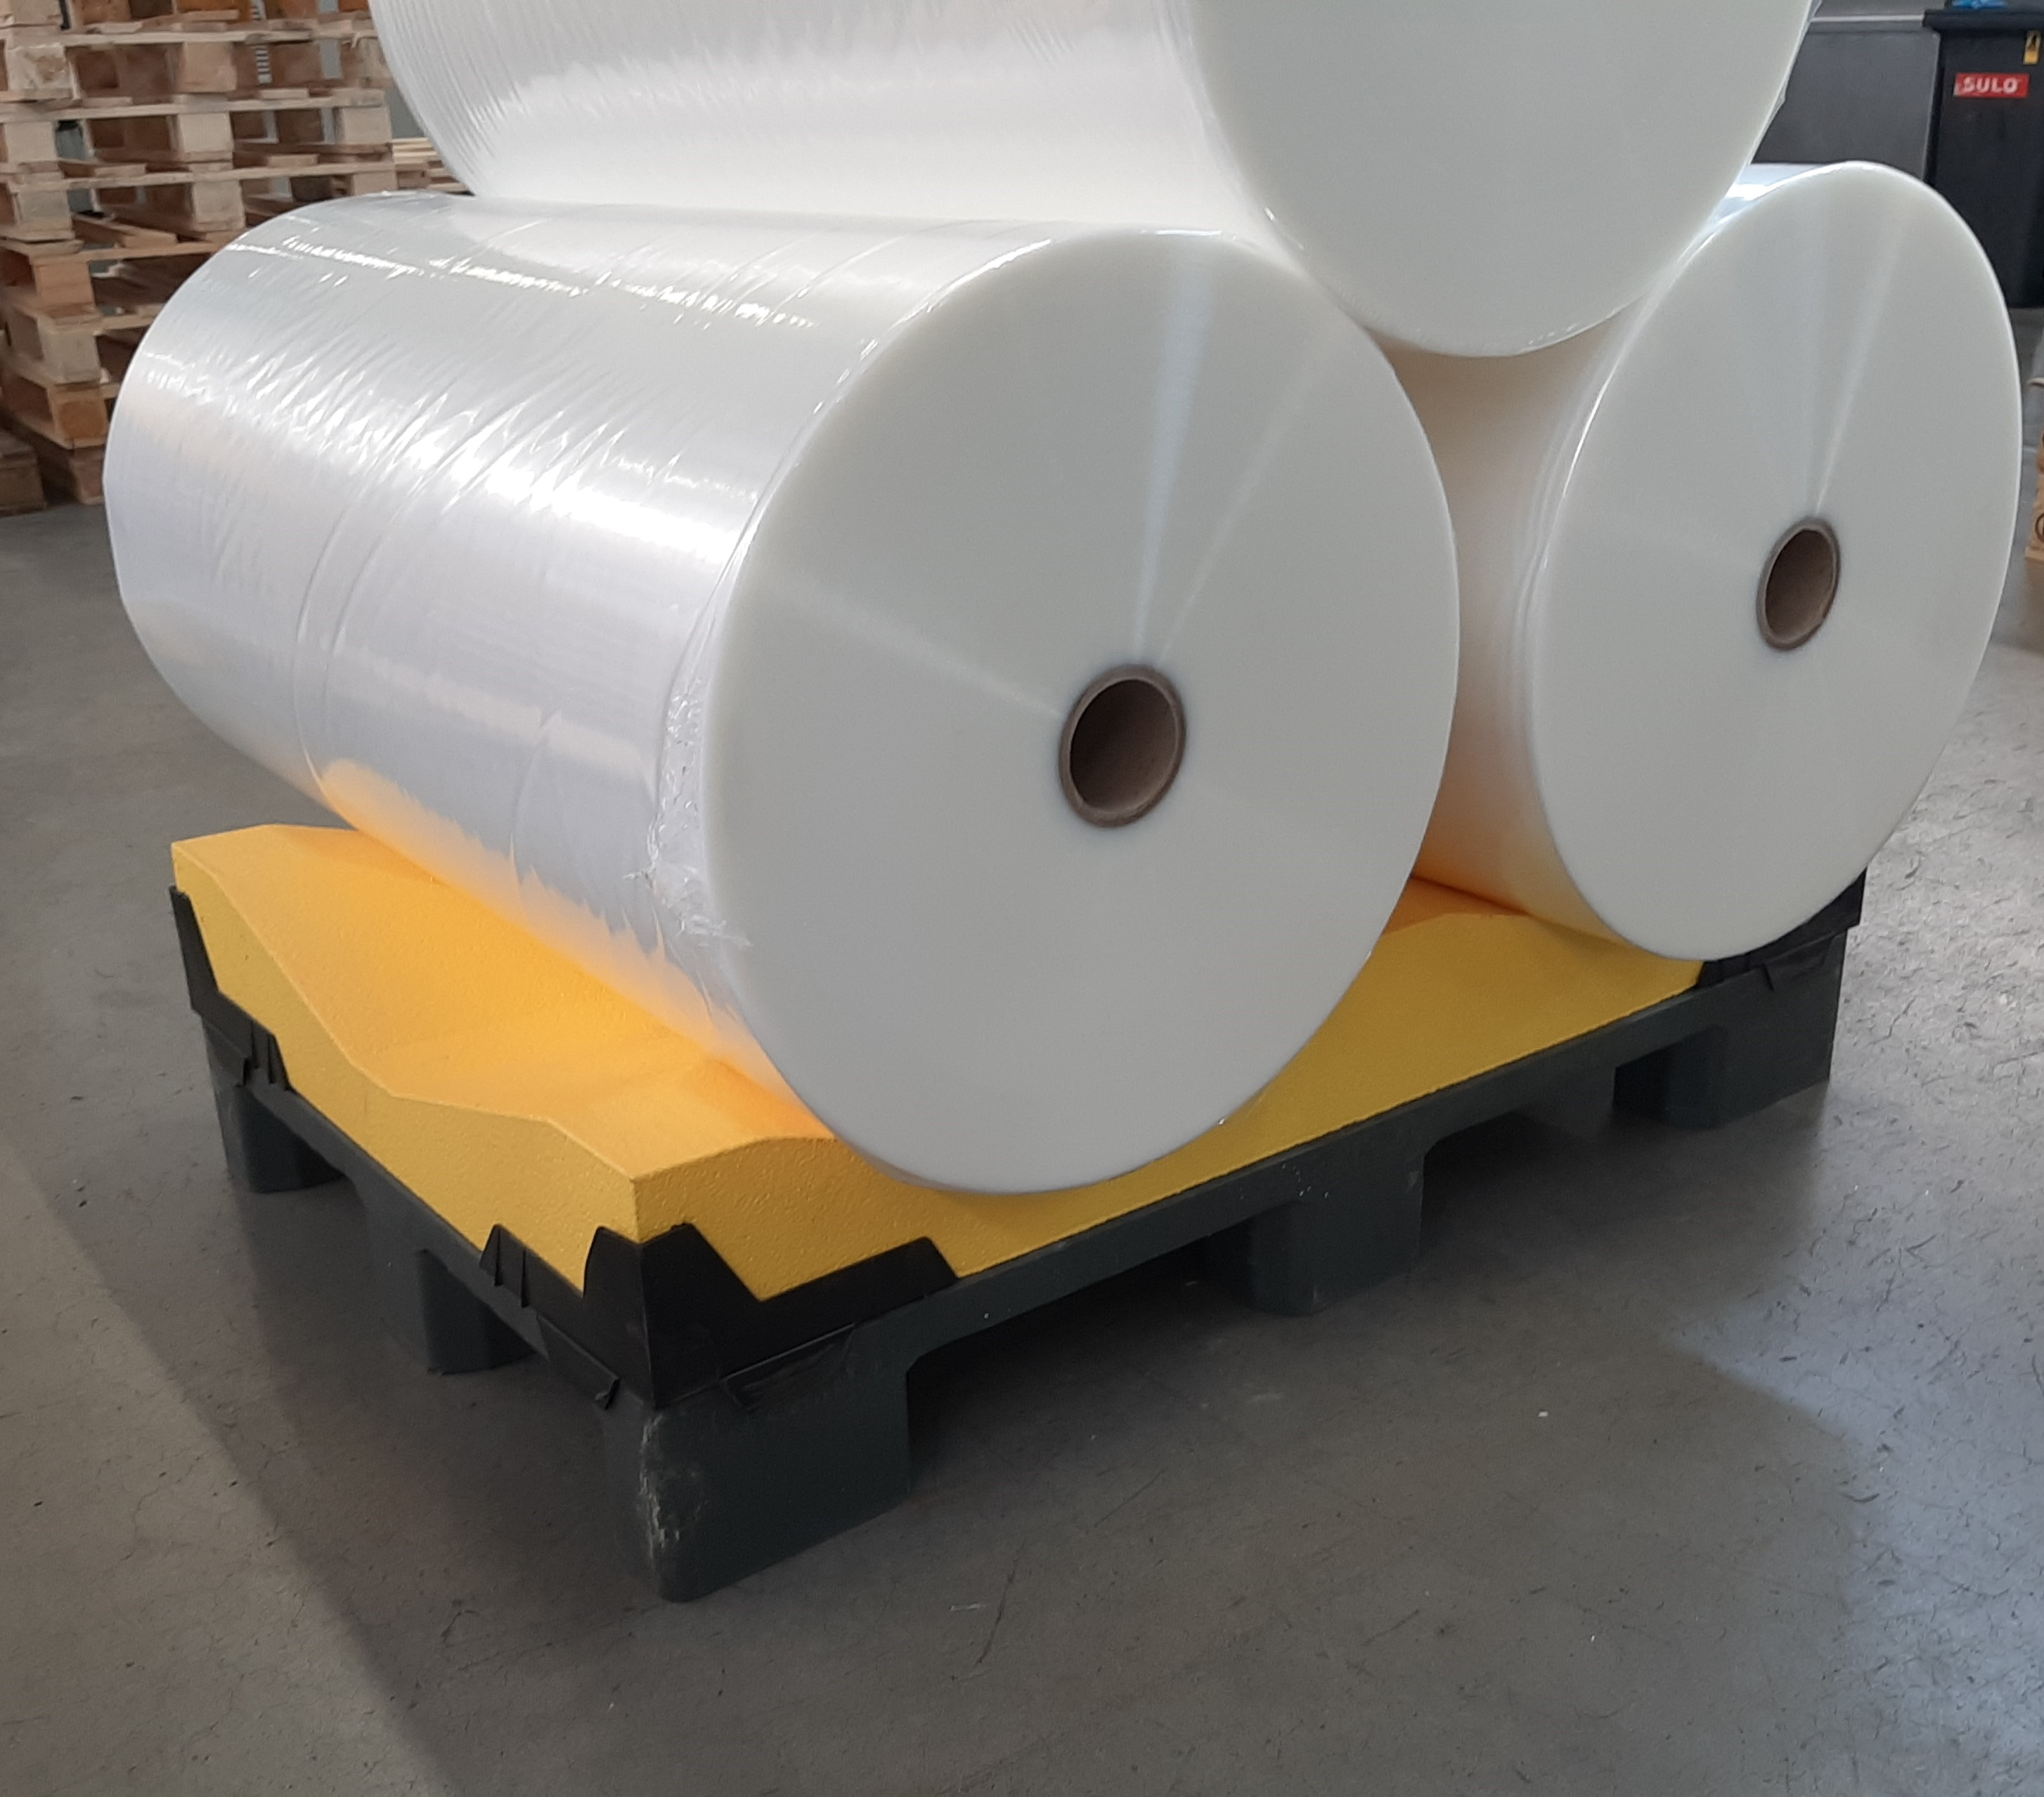 ROLL-PACKAGING_COMBO3_Pedane_Plastica_Ro